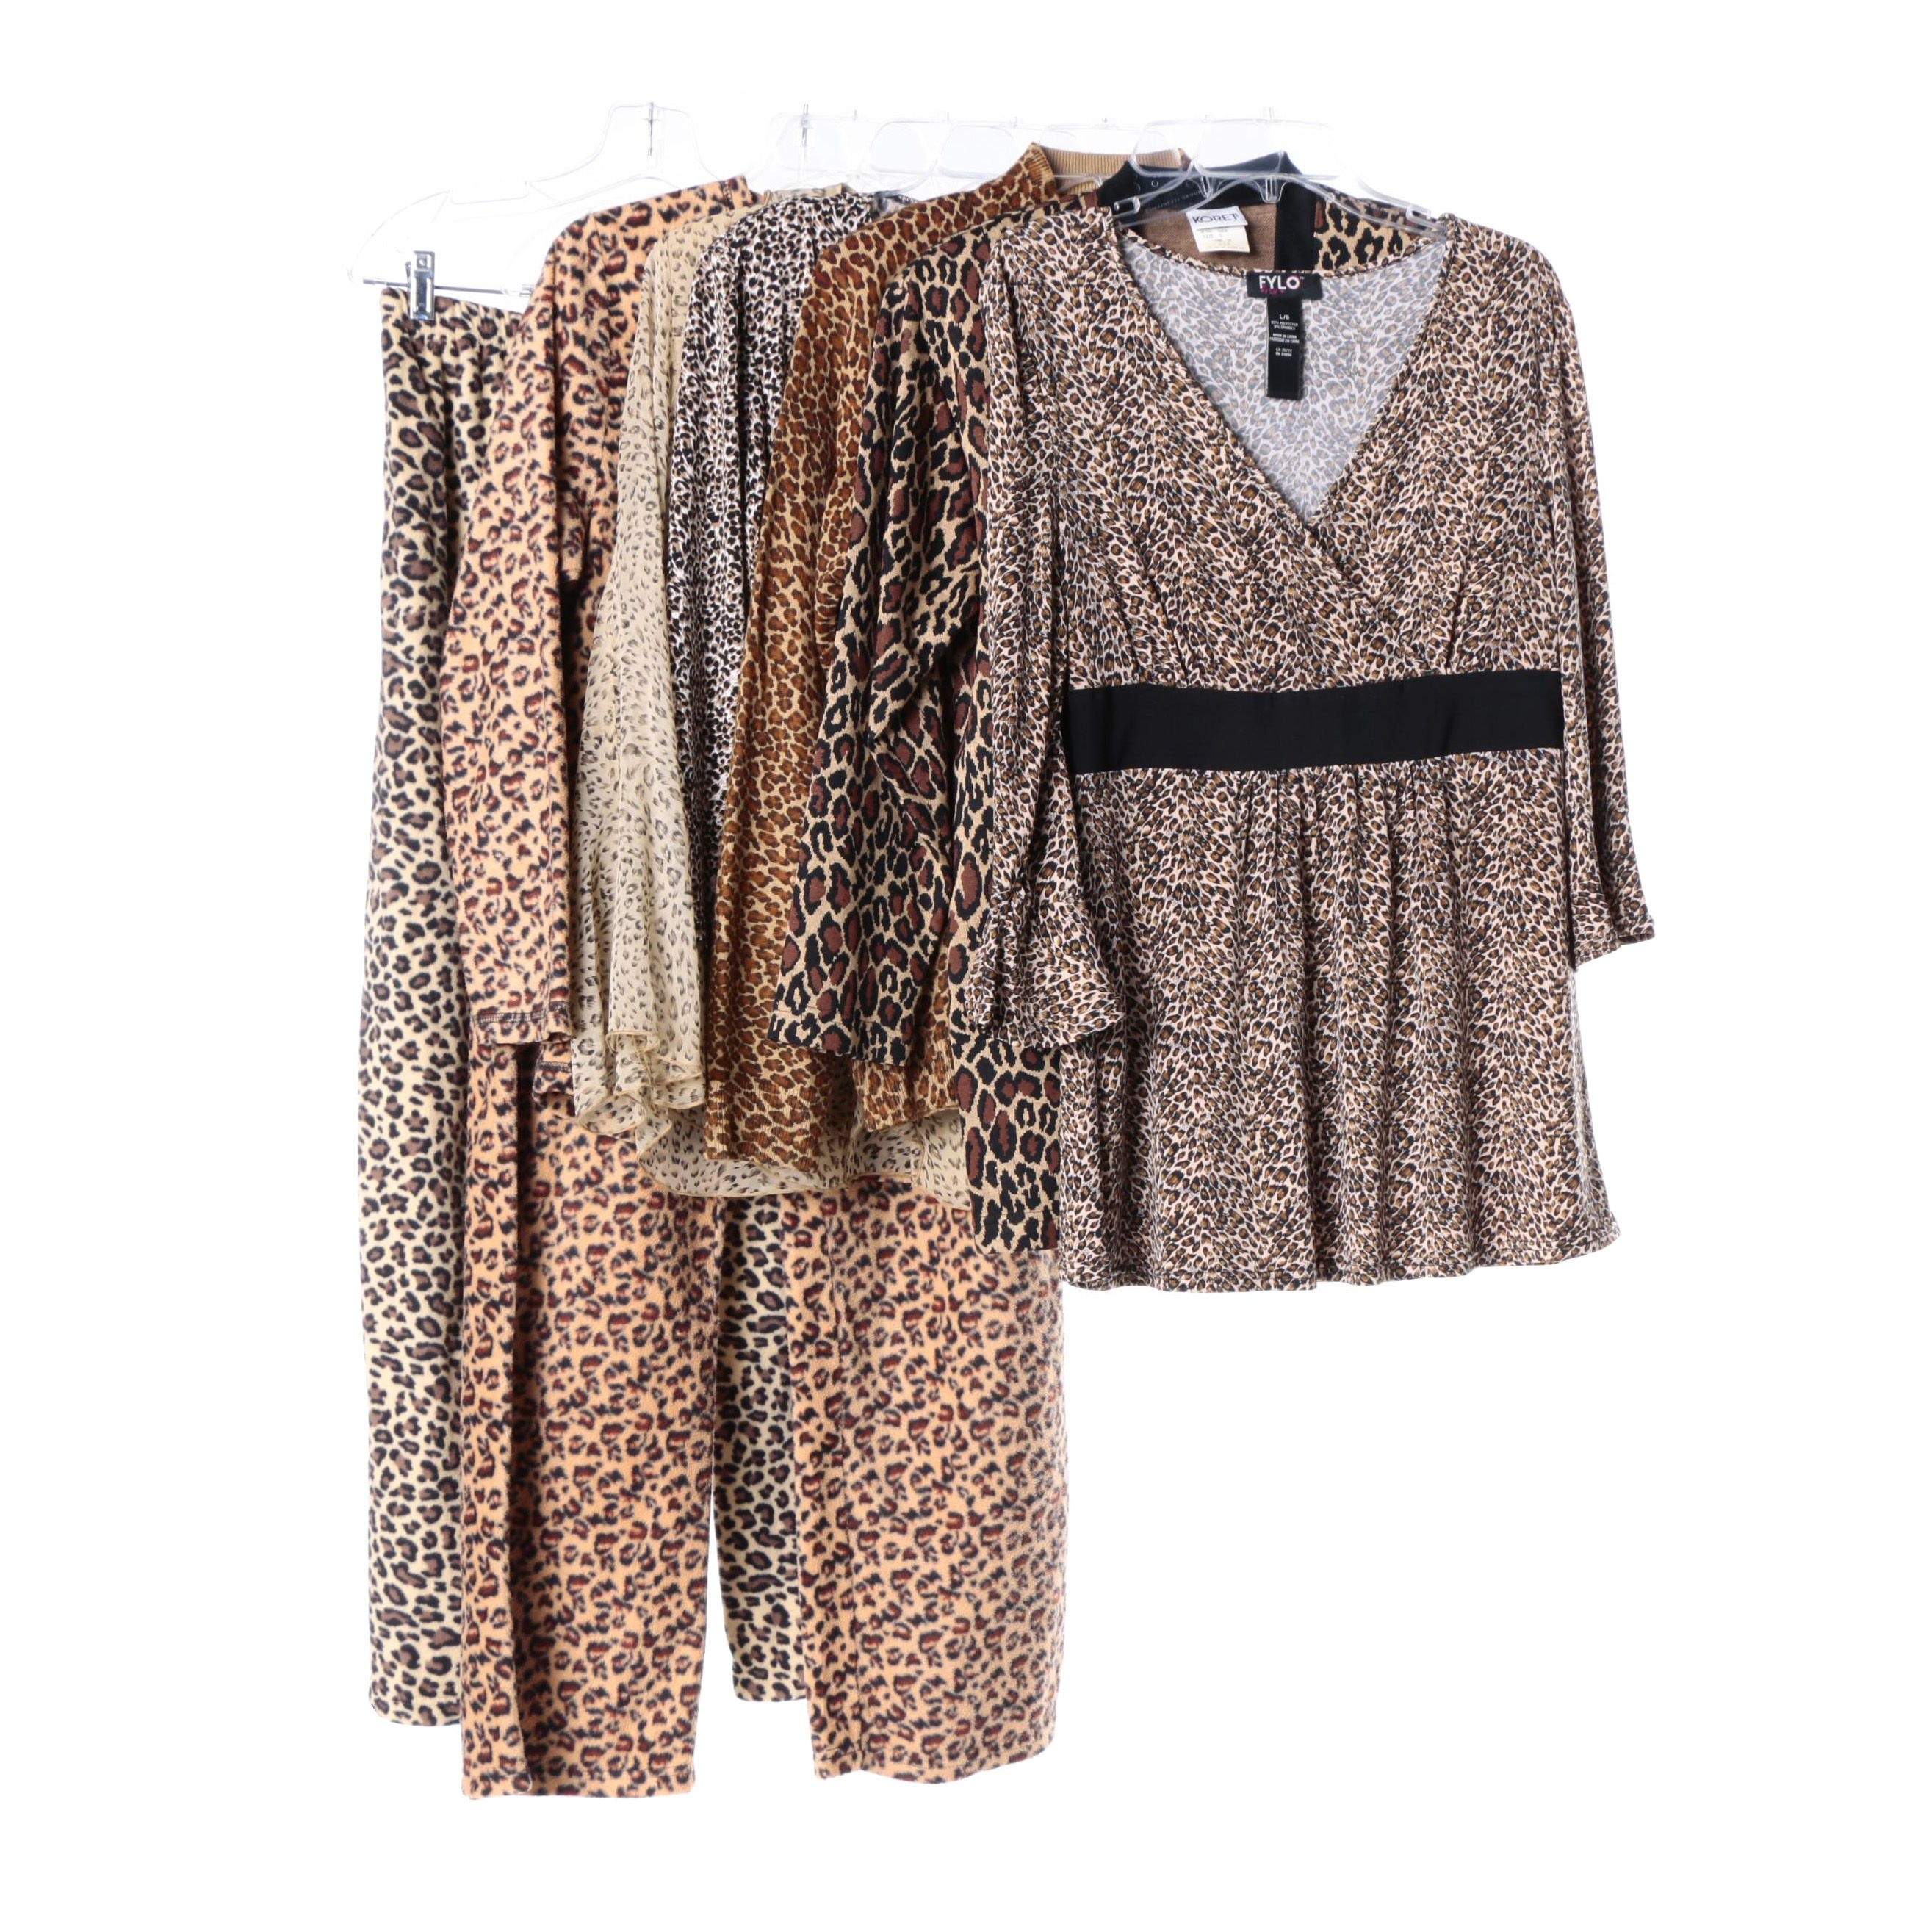 Women's Animal Print Separates Including Silk